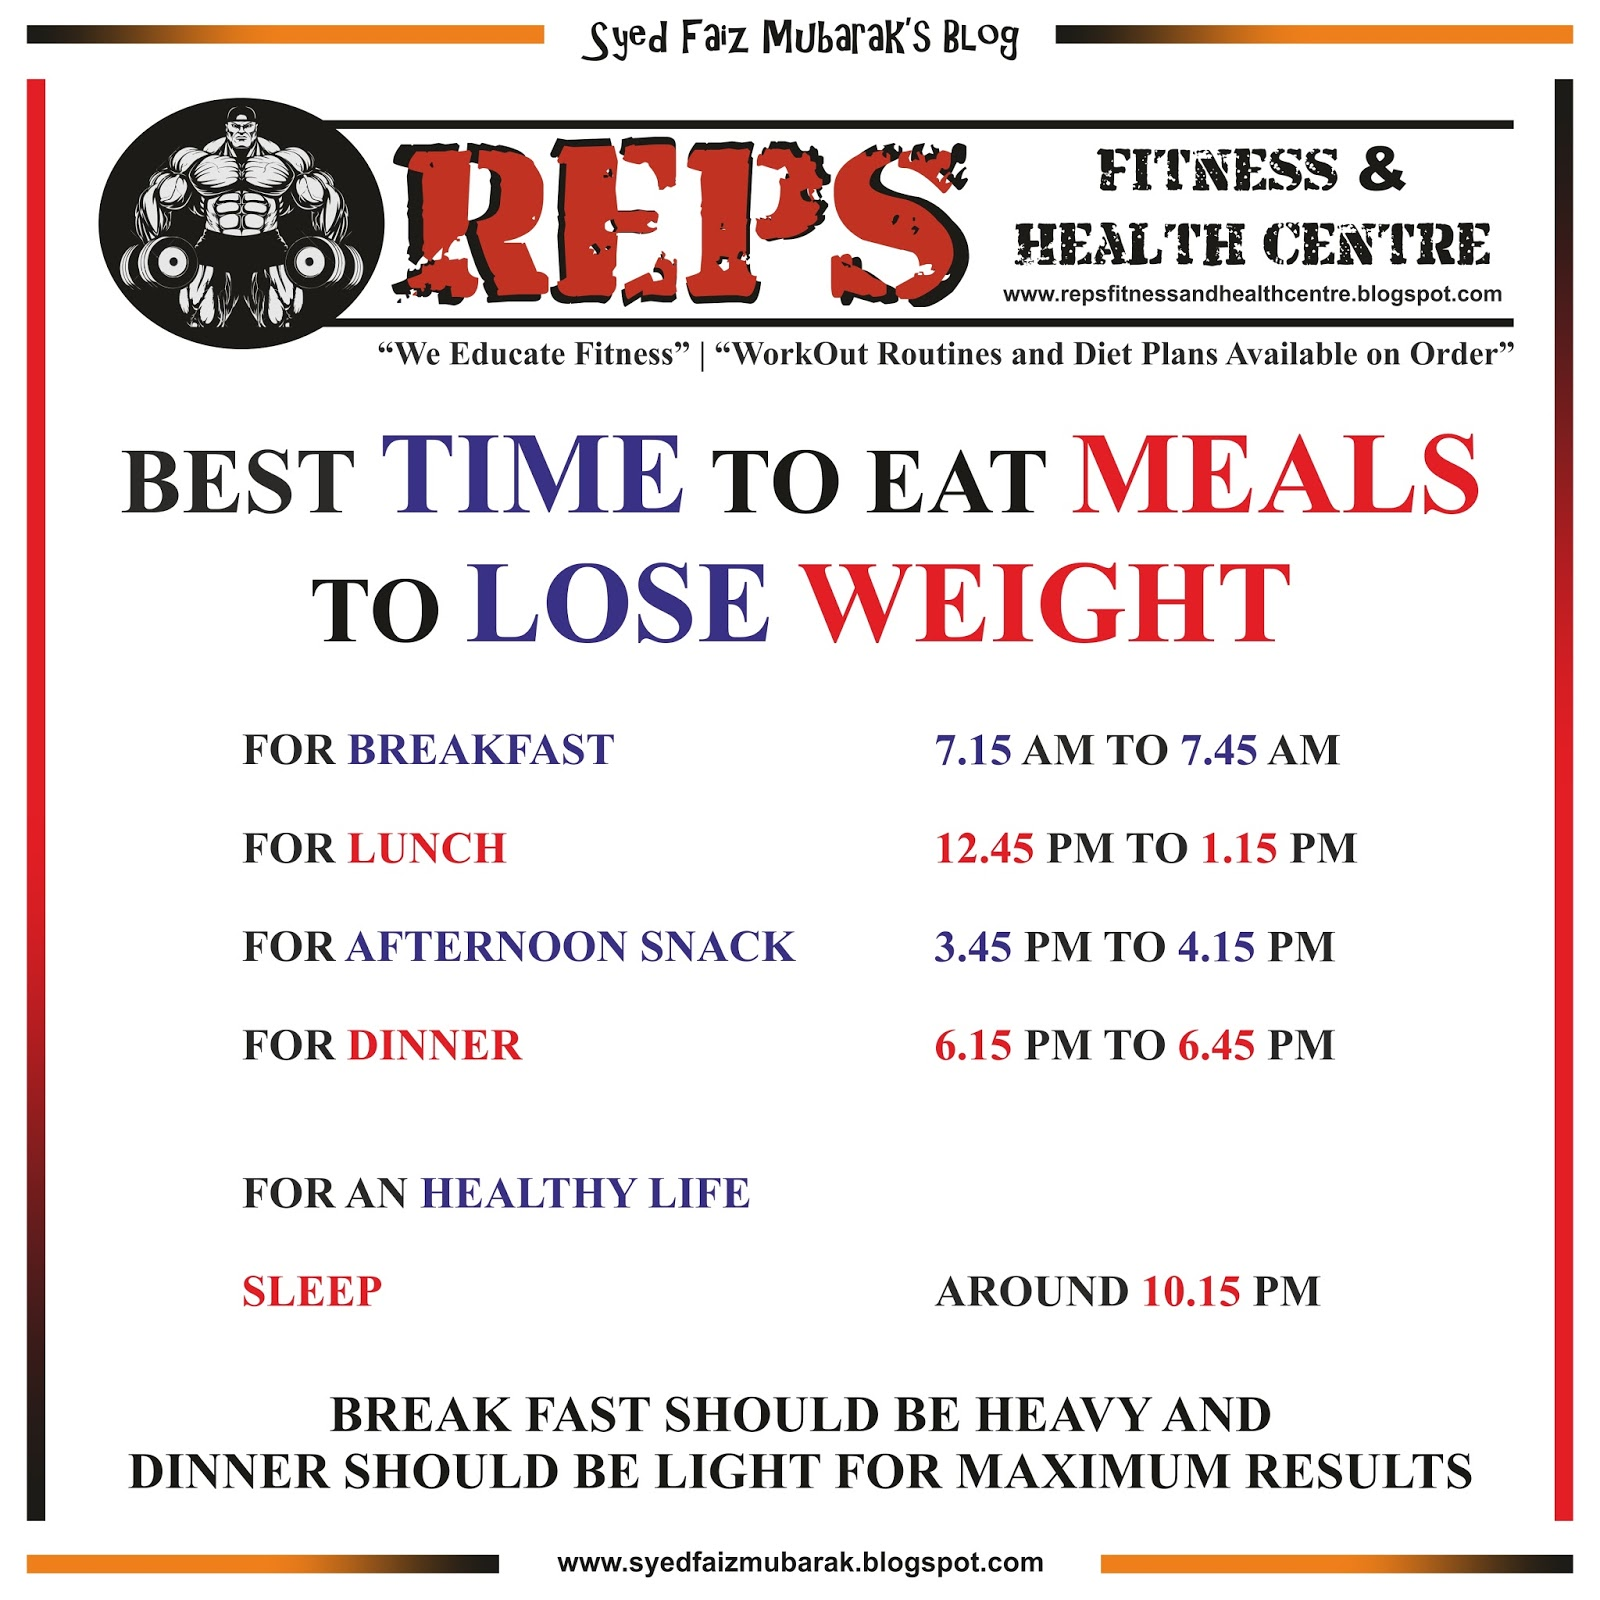 best times to eat meals to lose weight